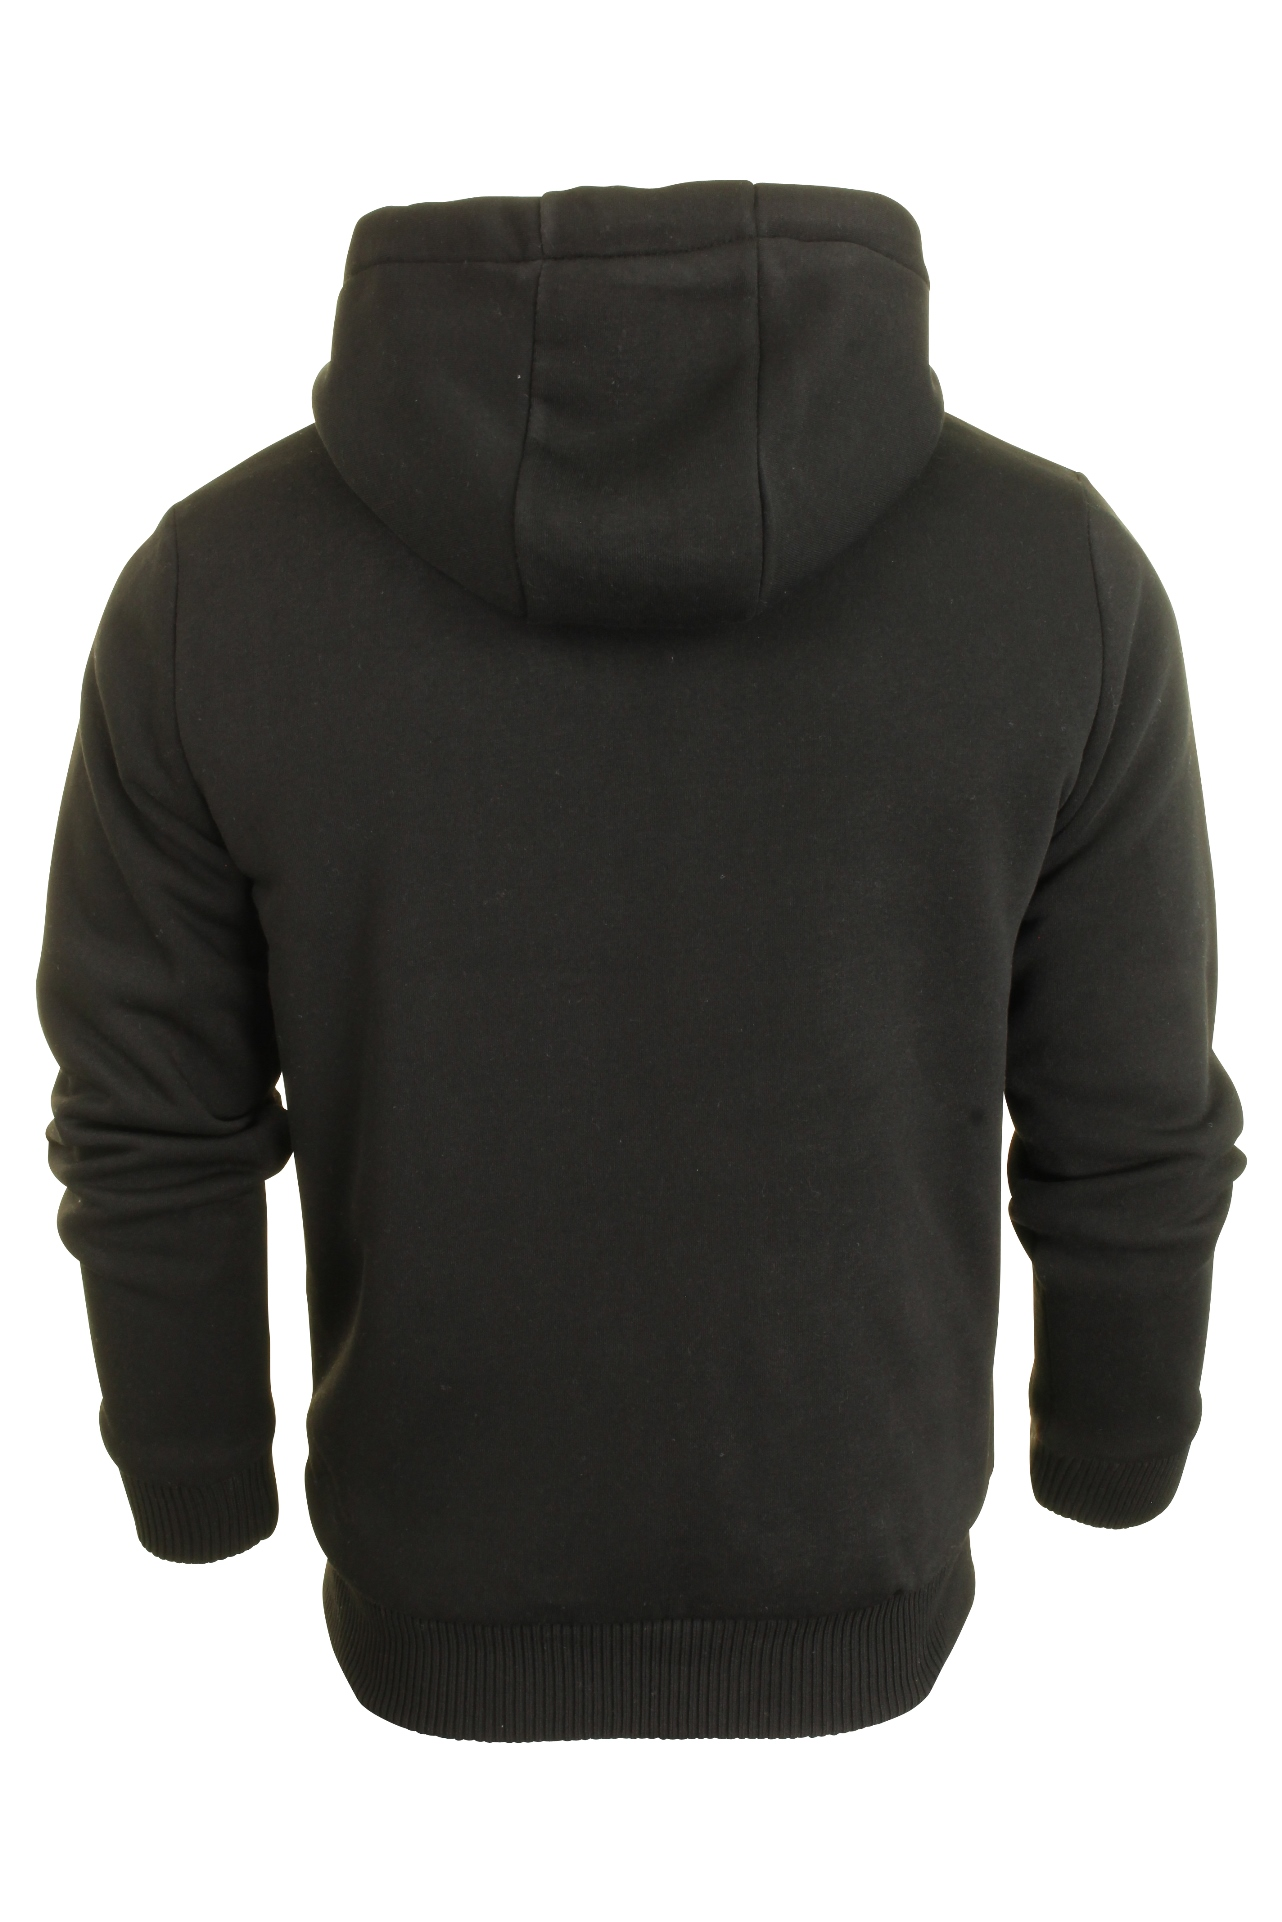 Mens-Dissident-Hoodie-039-Bolo-2-039-Fleece-Lined-Hood-amp-Body thumbnail 5